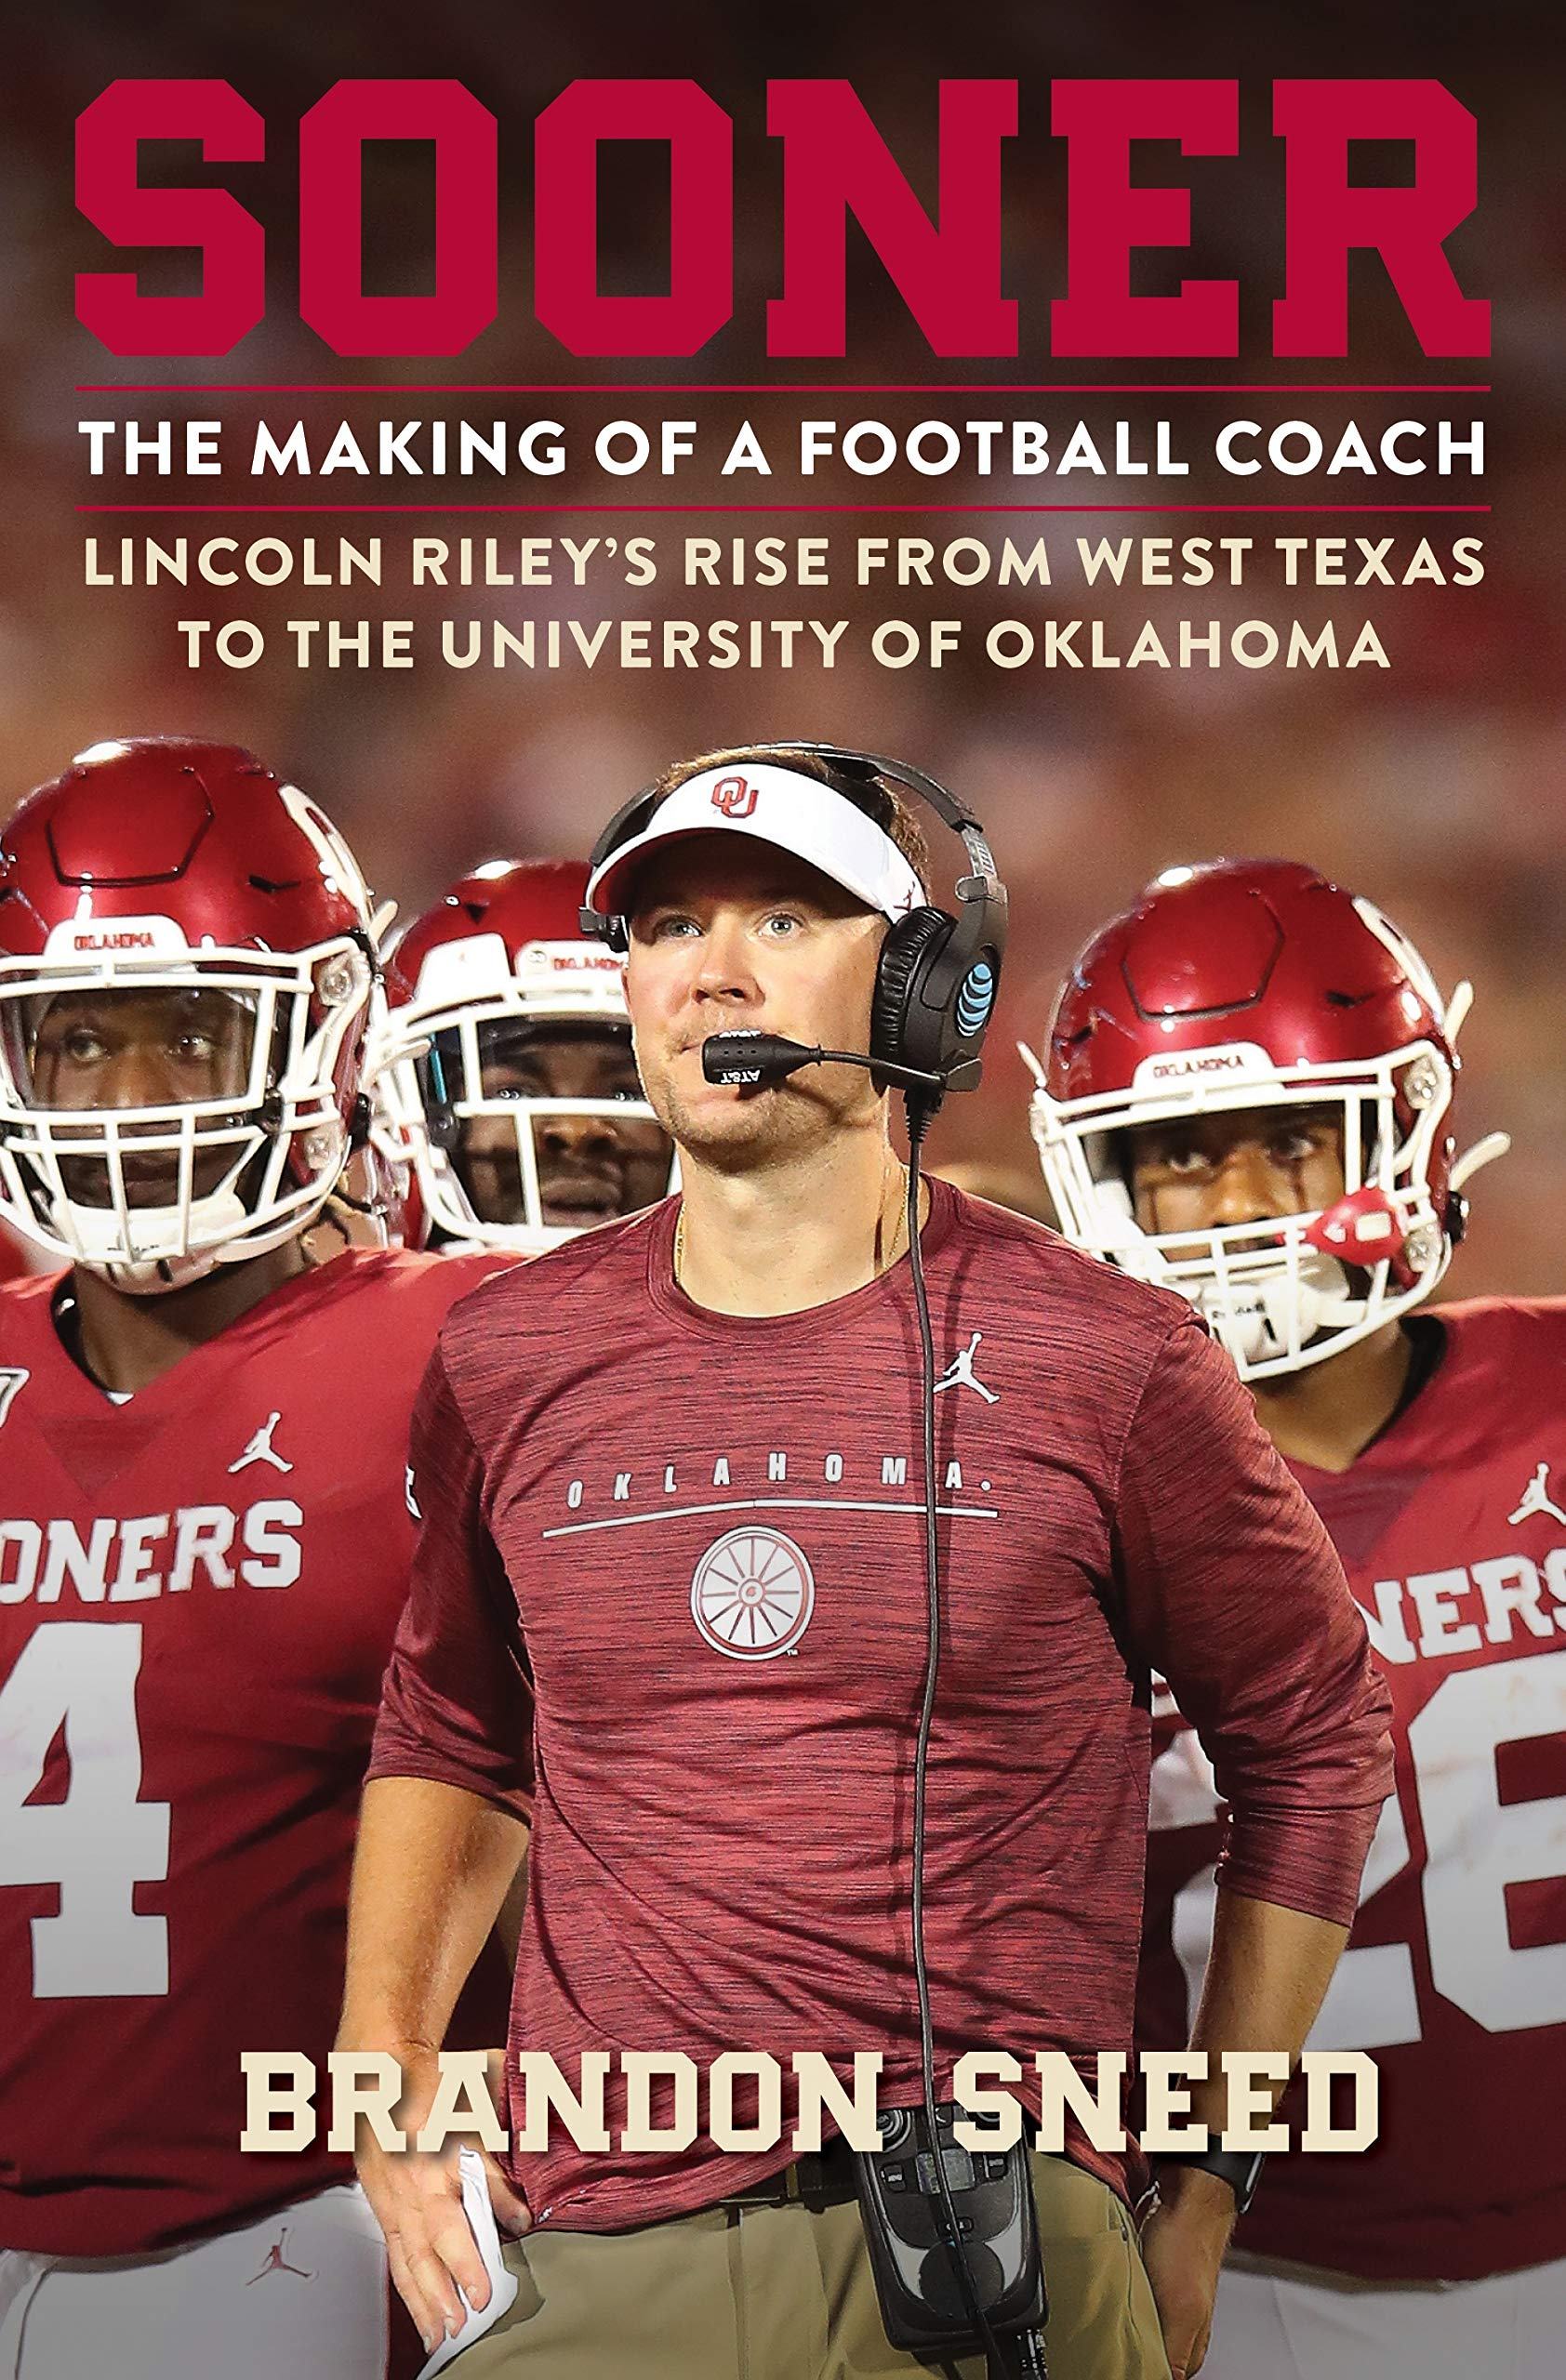 Sooner The Making Of A Football Coach Lincoln Riley S Rise From West Texas To The University Of Oklahoma Sneed Brandon 9781250622167 Amazon Com Books